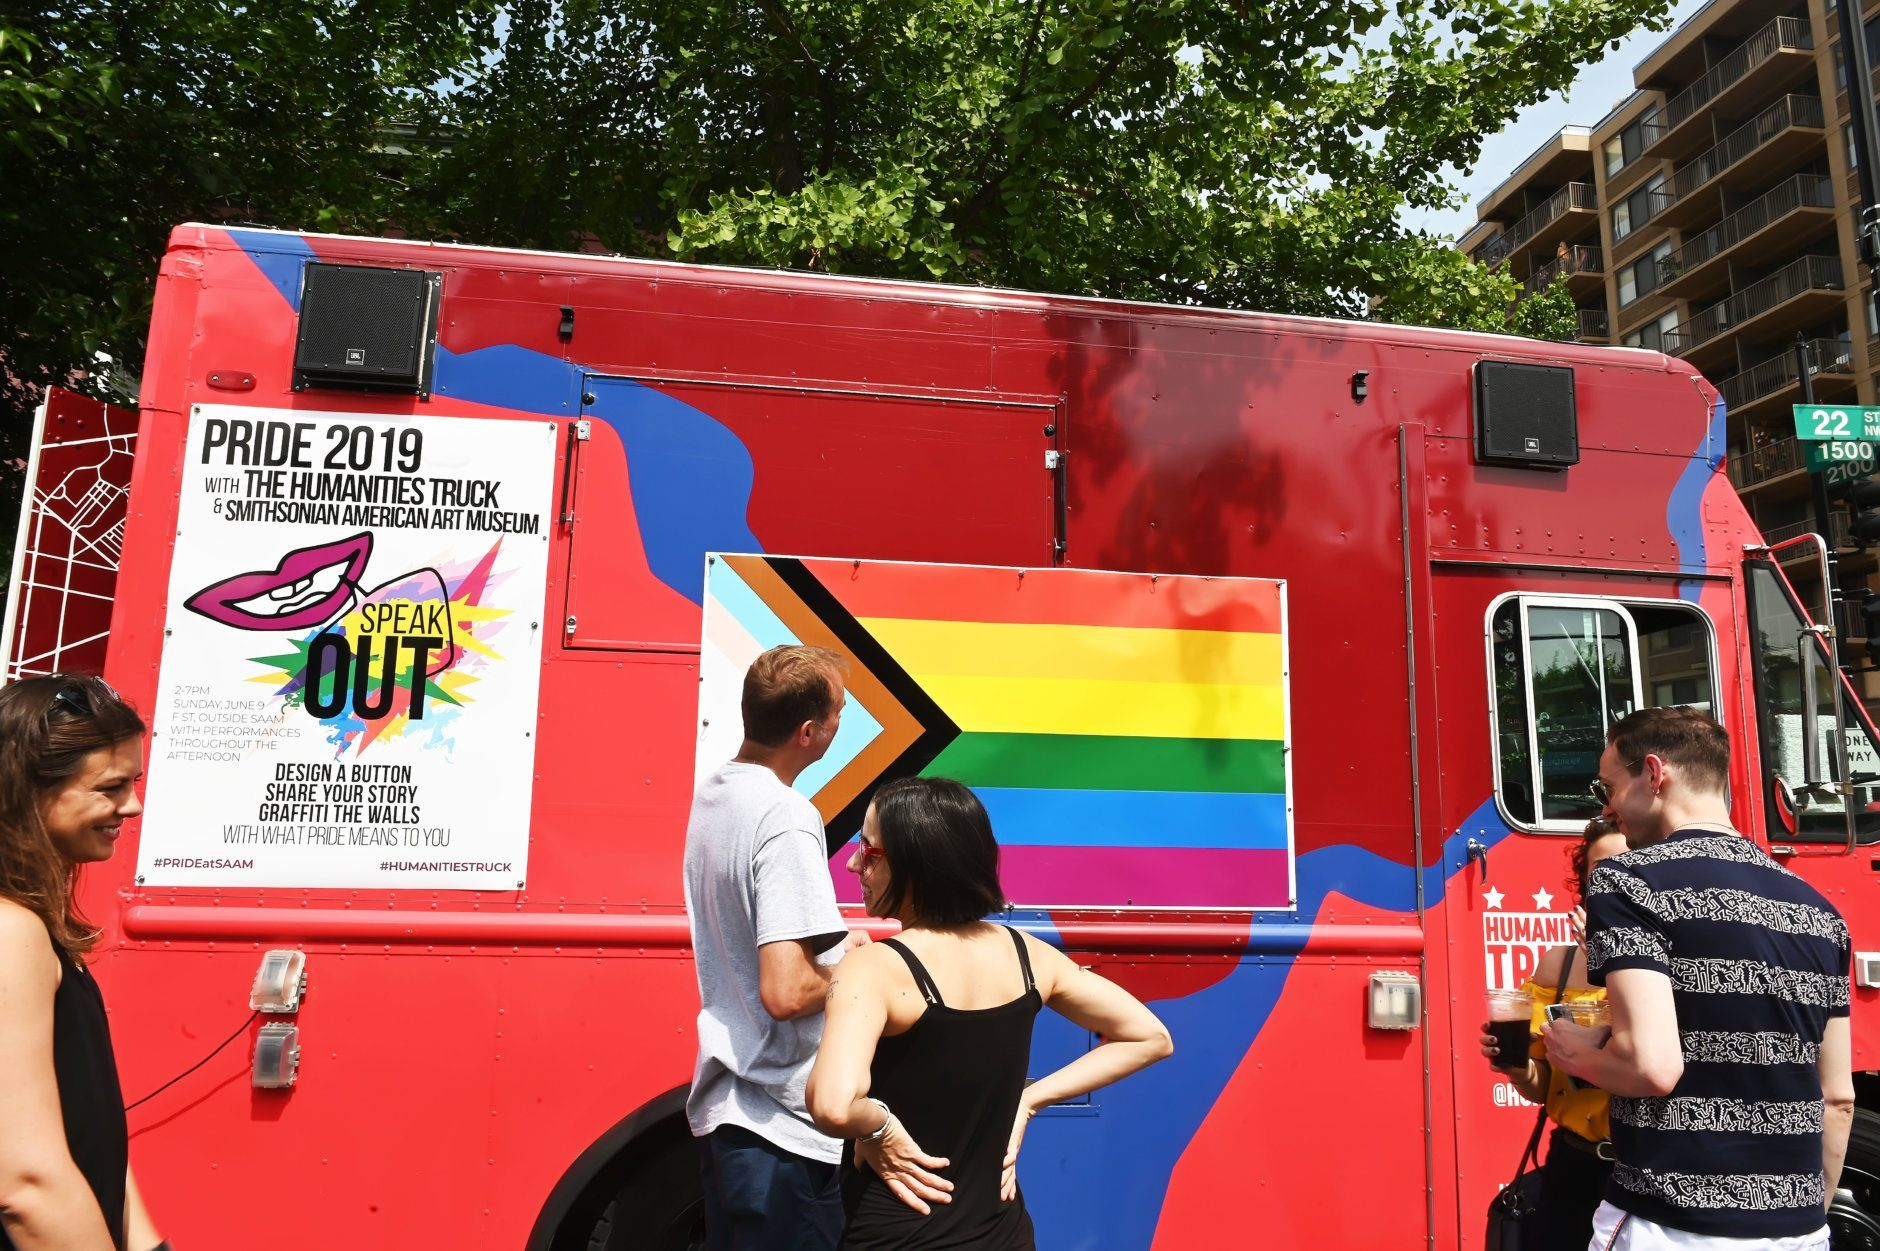 The Humanities Truck, a mobile art space sponsored by the Smithsonian American Art Museum and a partnership with American University, collects stories from the LGBTQ experience as part of Capital Pride.